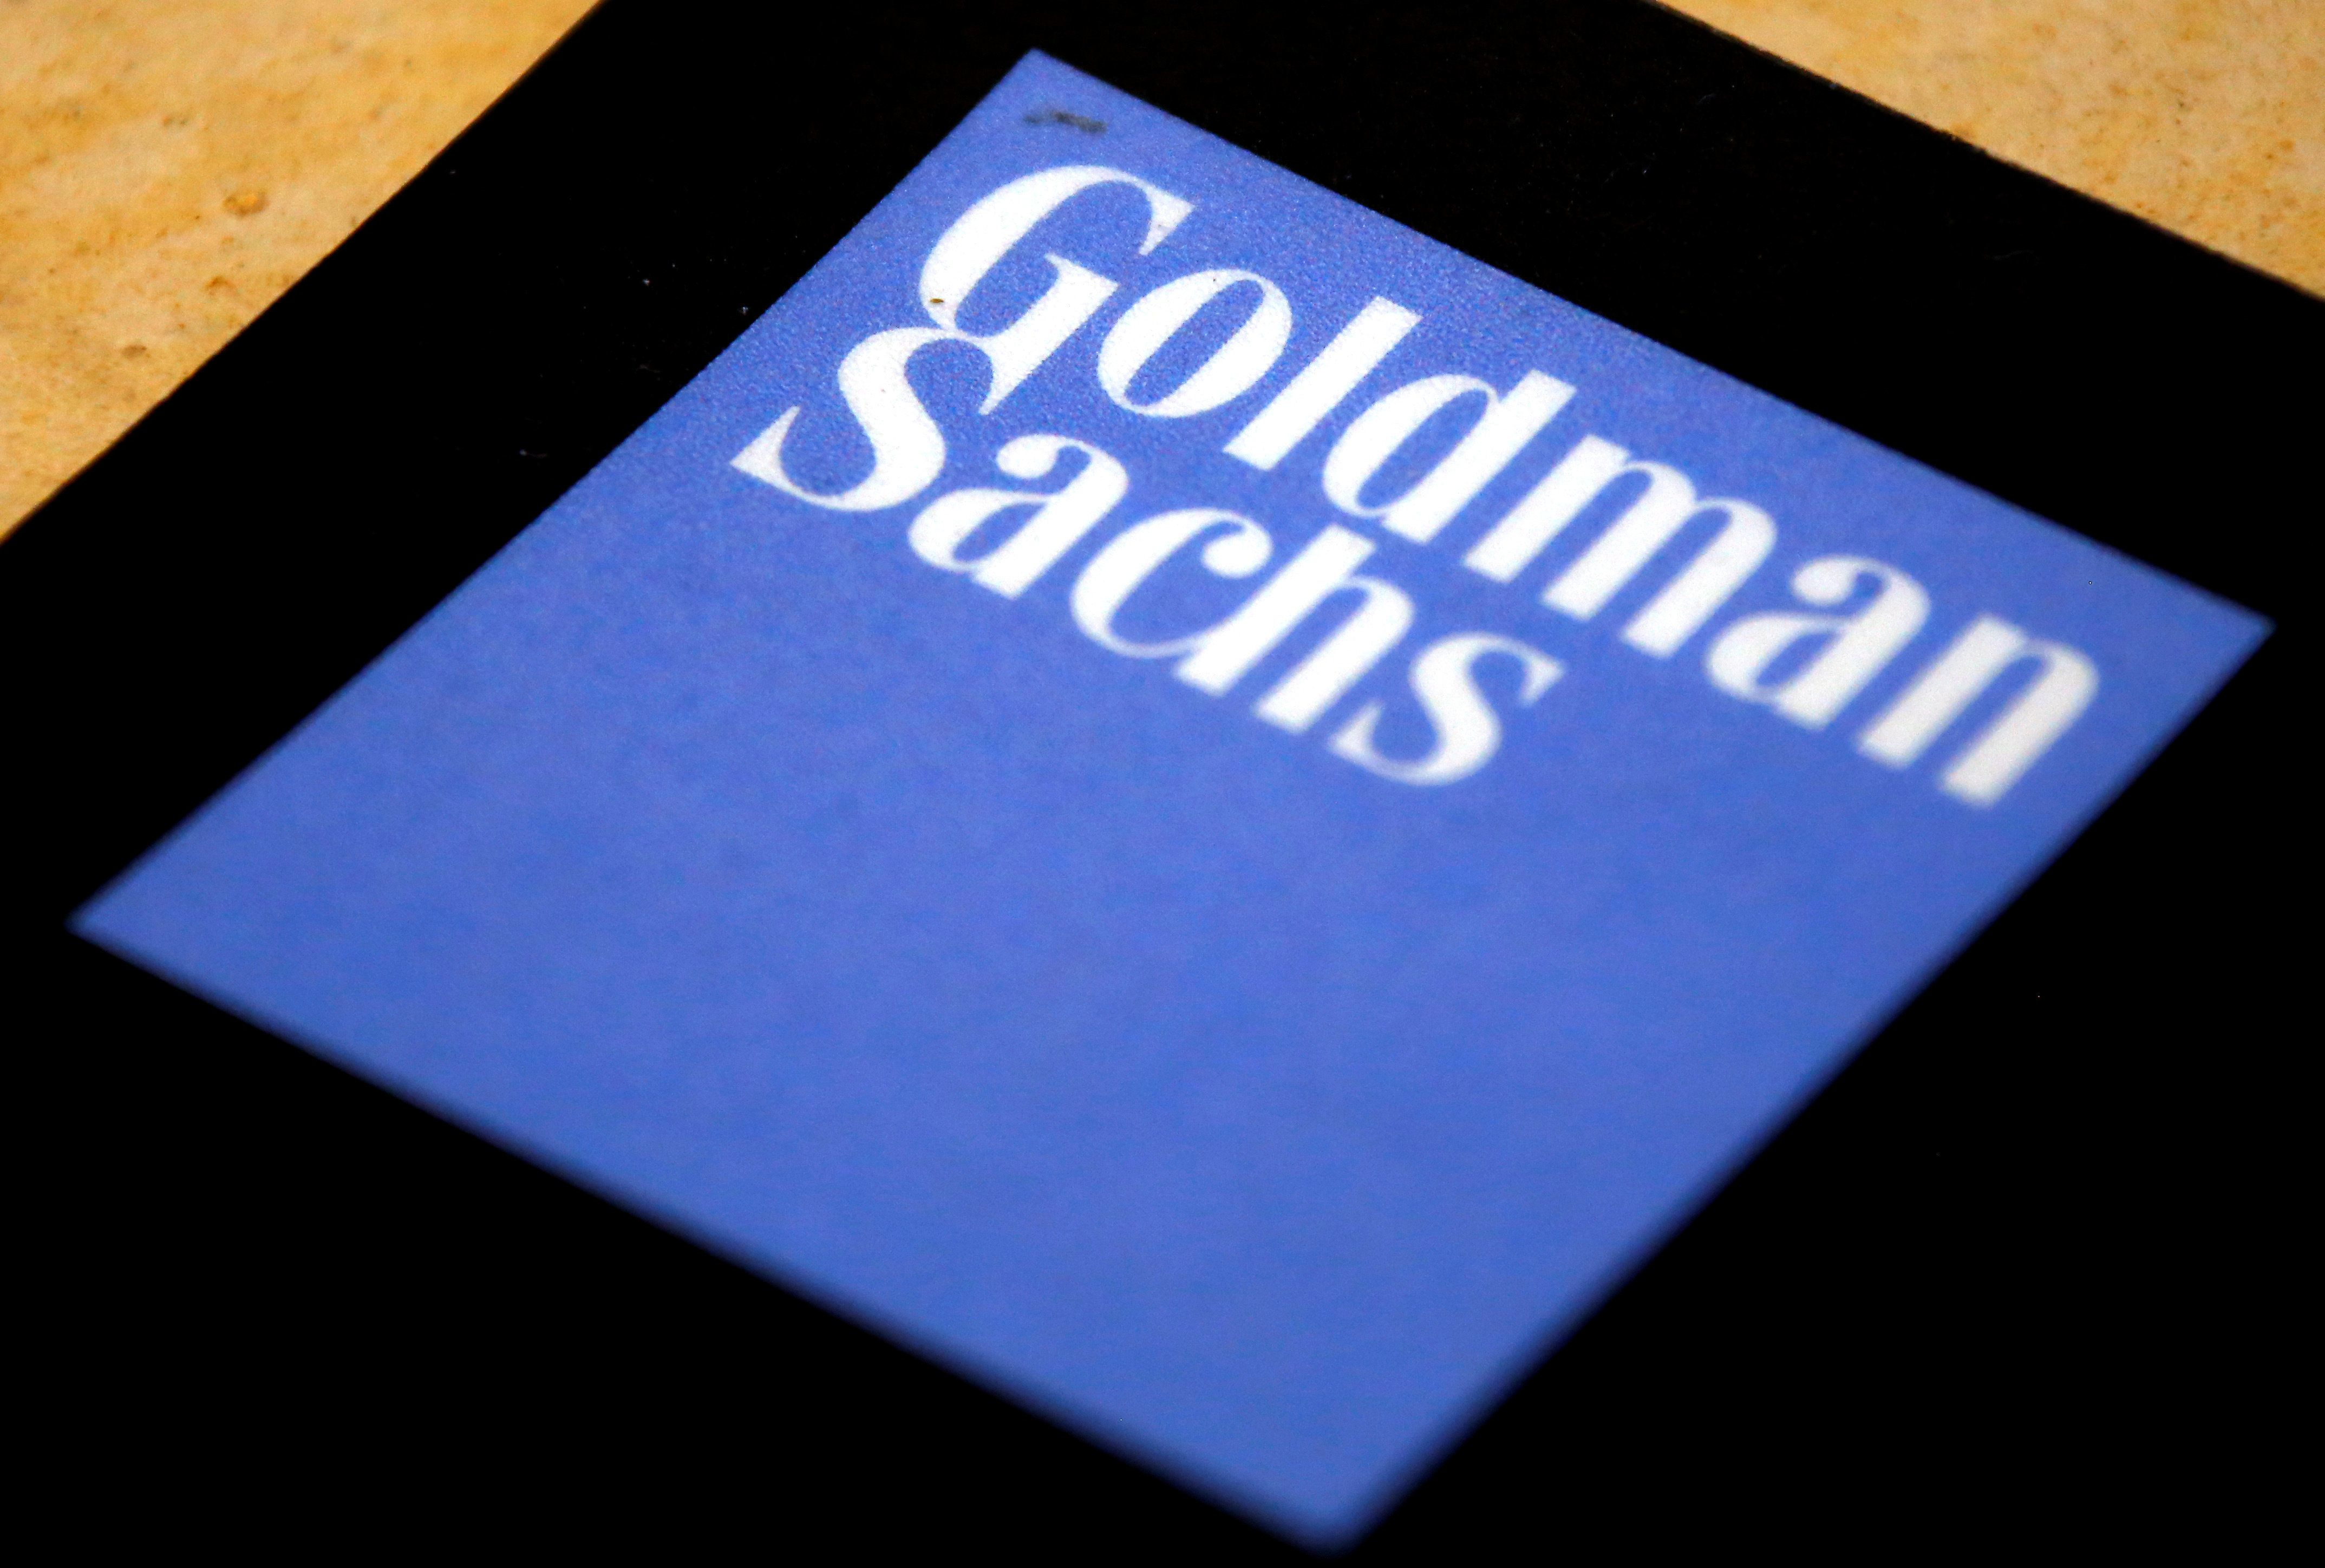 Goldman Sachs vice president charged in insider-trading case